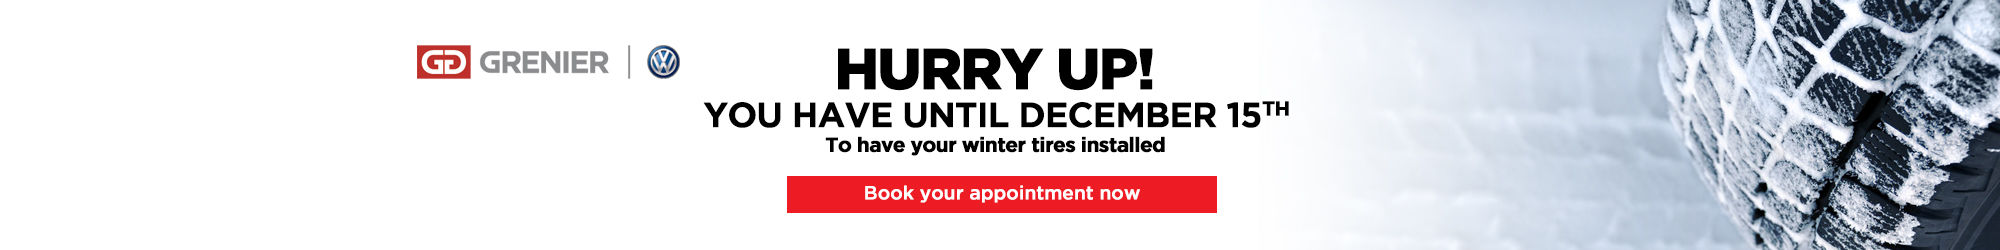 Winter tire installation december 15th